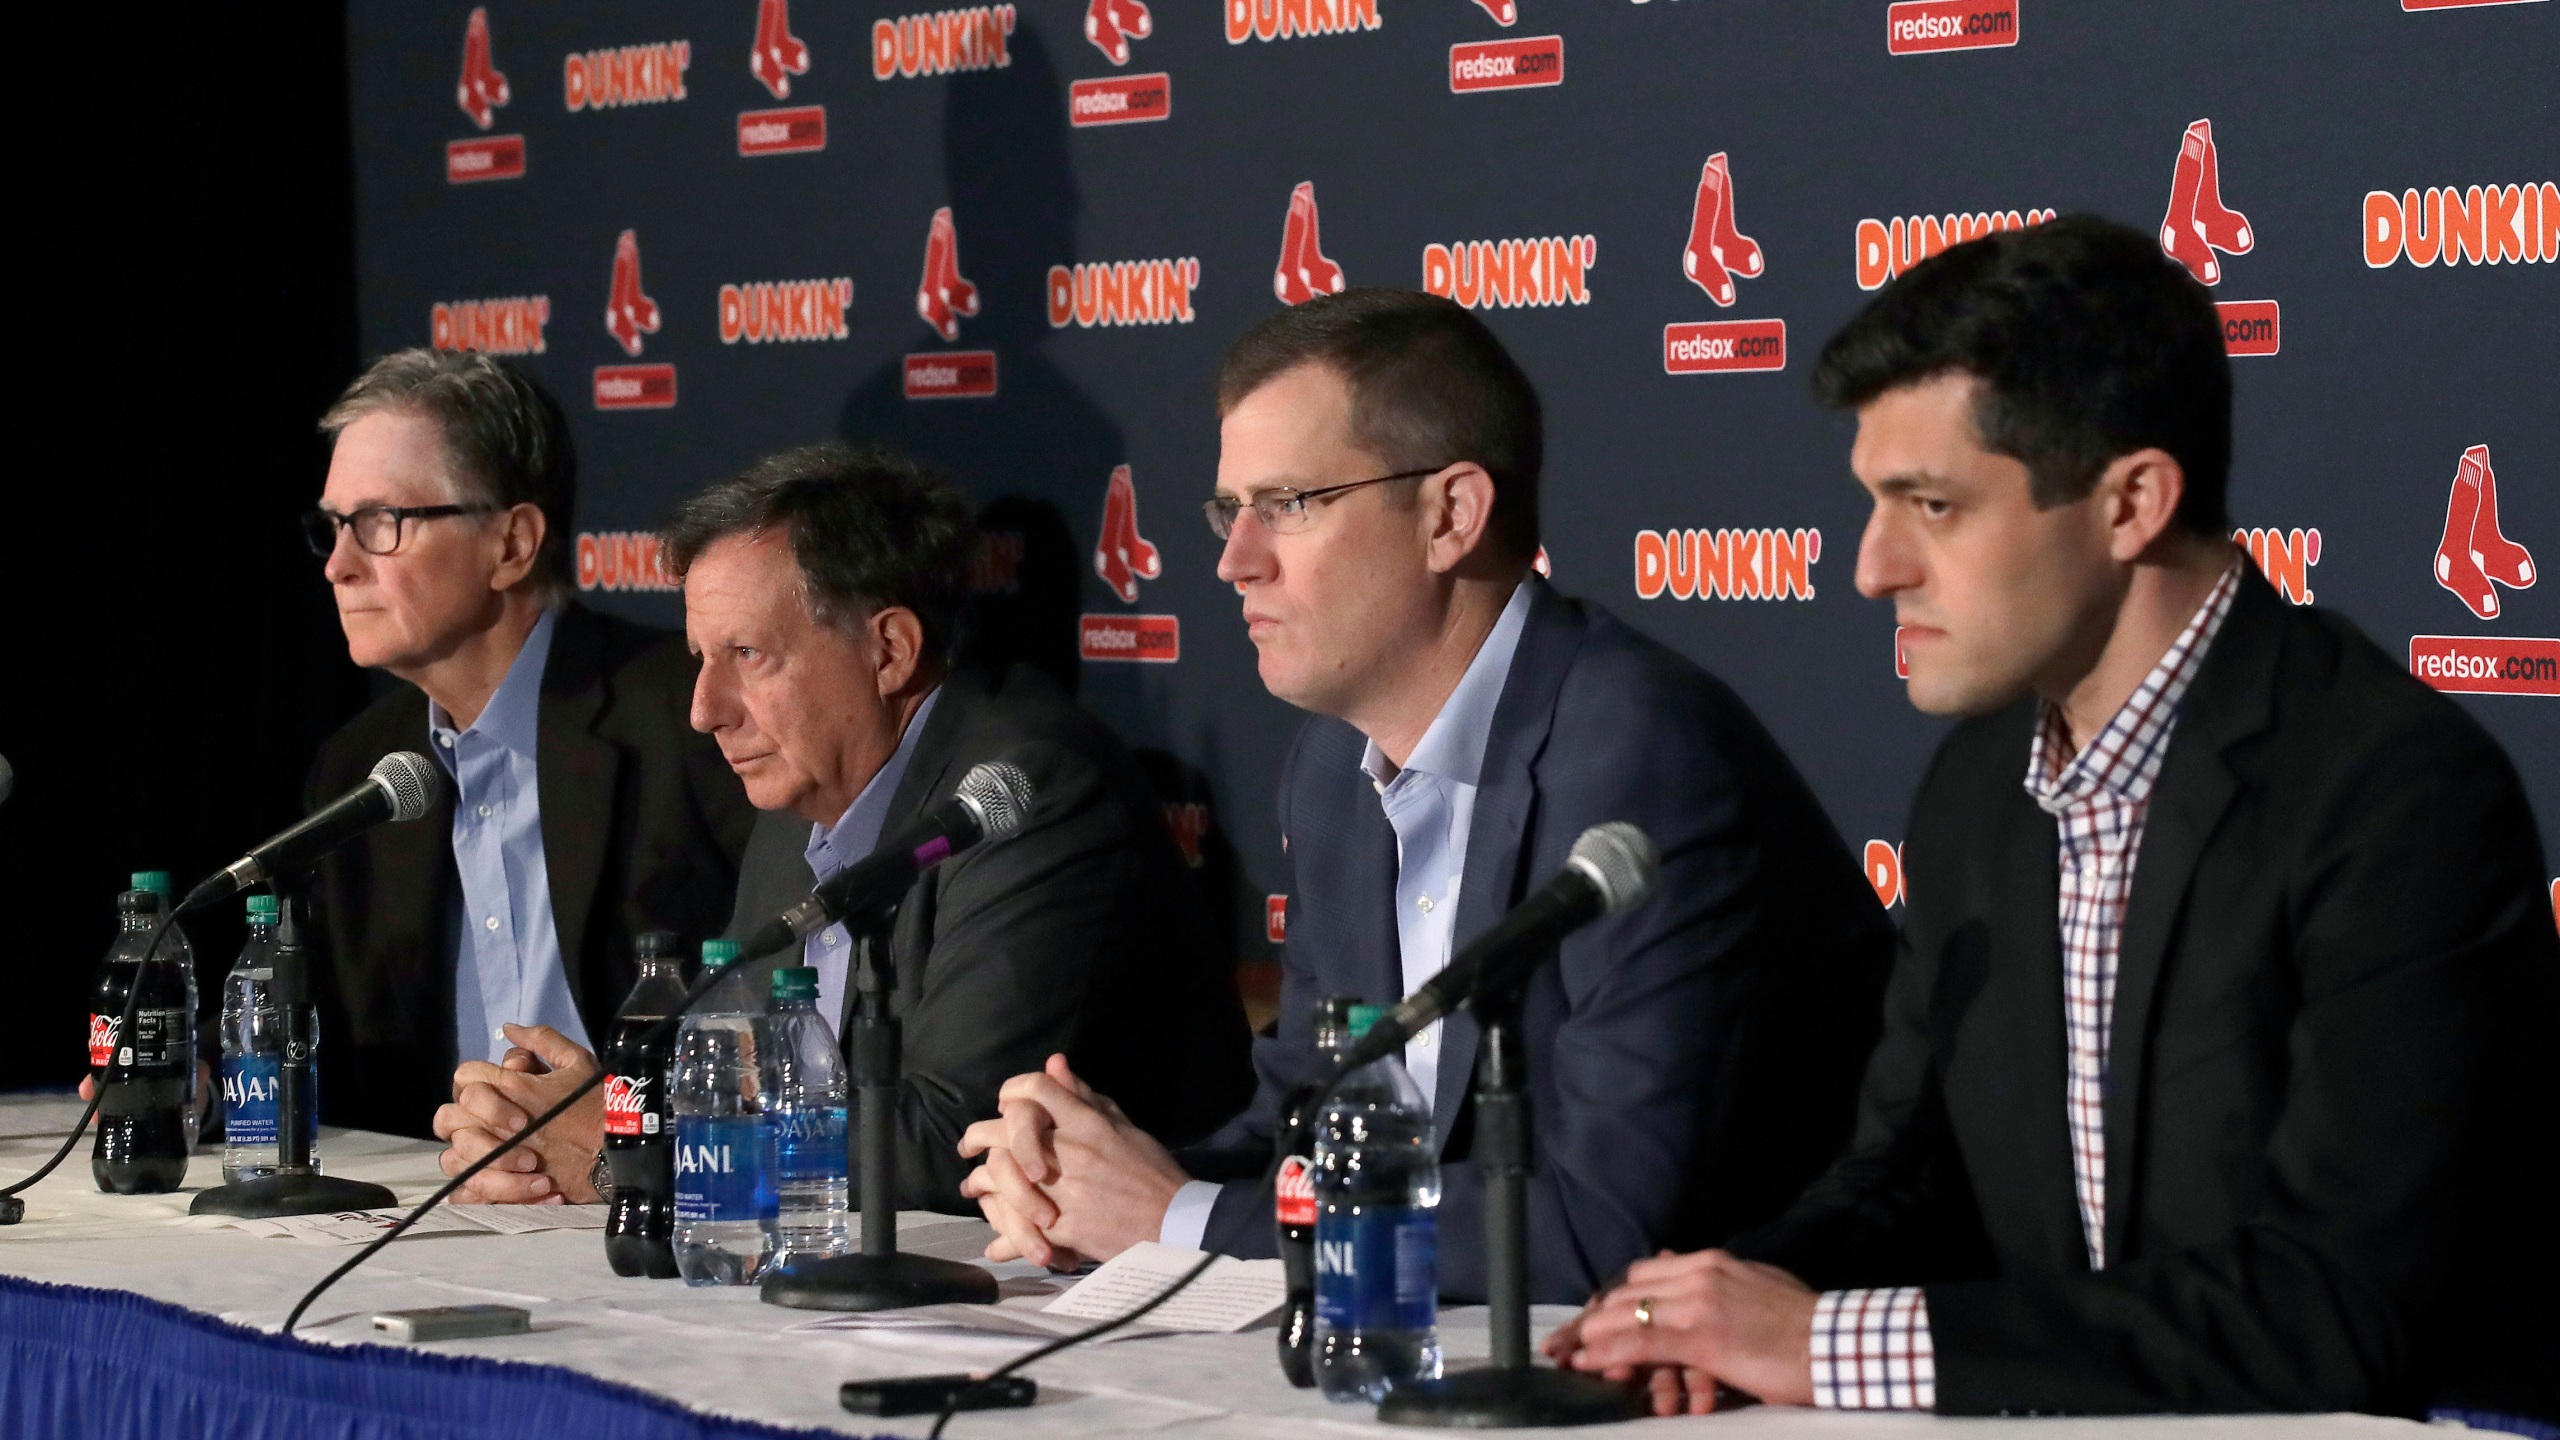 John Henry, Tom Werner, Sam Kennedy, Chaim Bloom